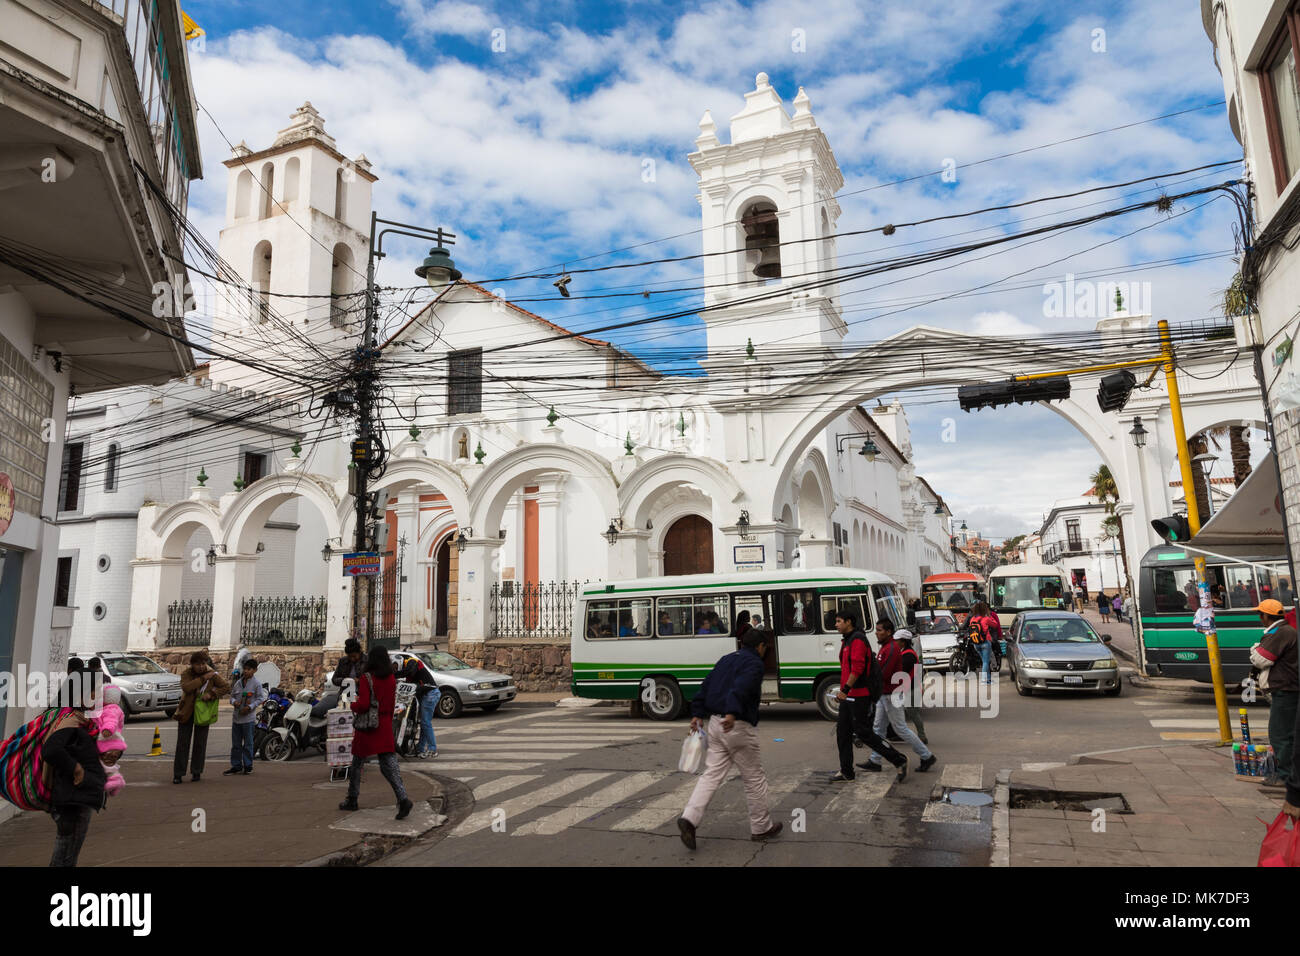 Sucre Boliwia February 08 2018 San Francisco Church In Sucre Bolivia Sucre Is The Constitutional Capital Of Bolivia Traditional Colonial Archi Stock Photo Alamy